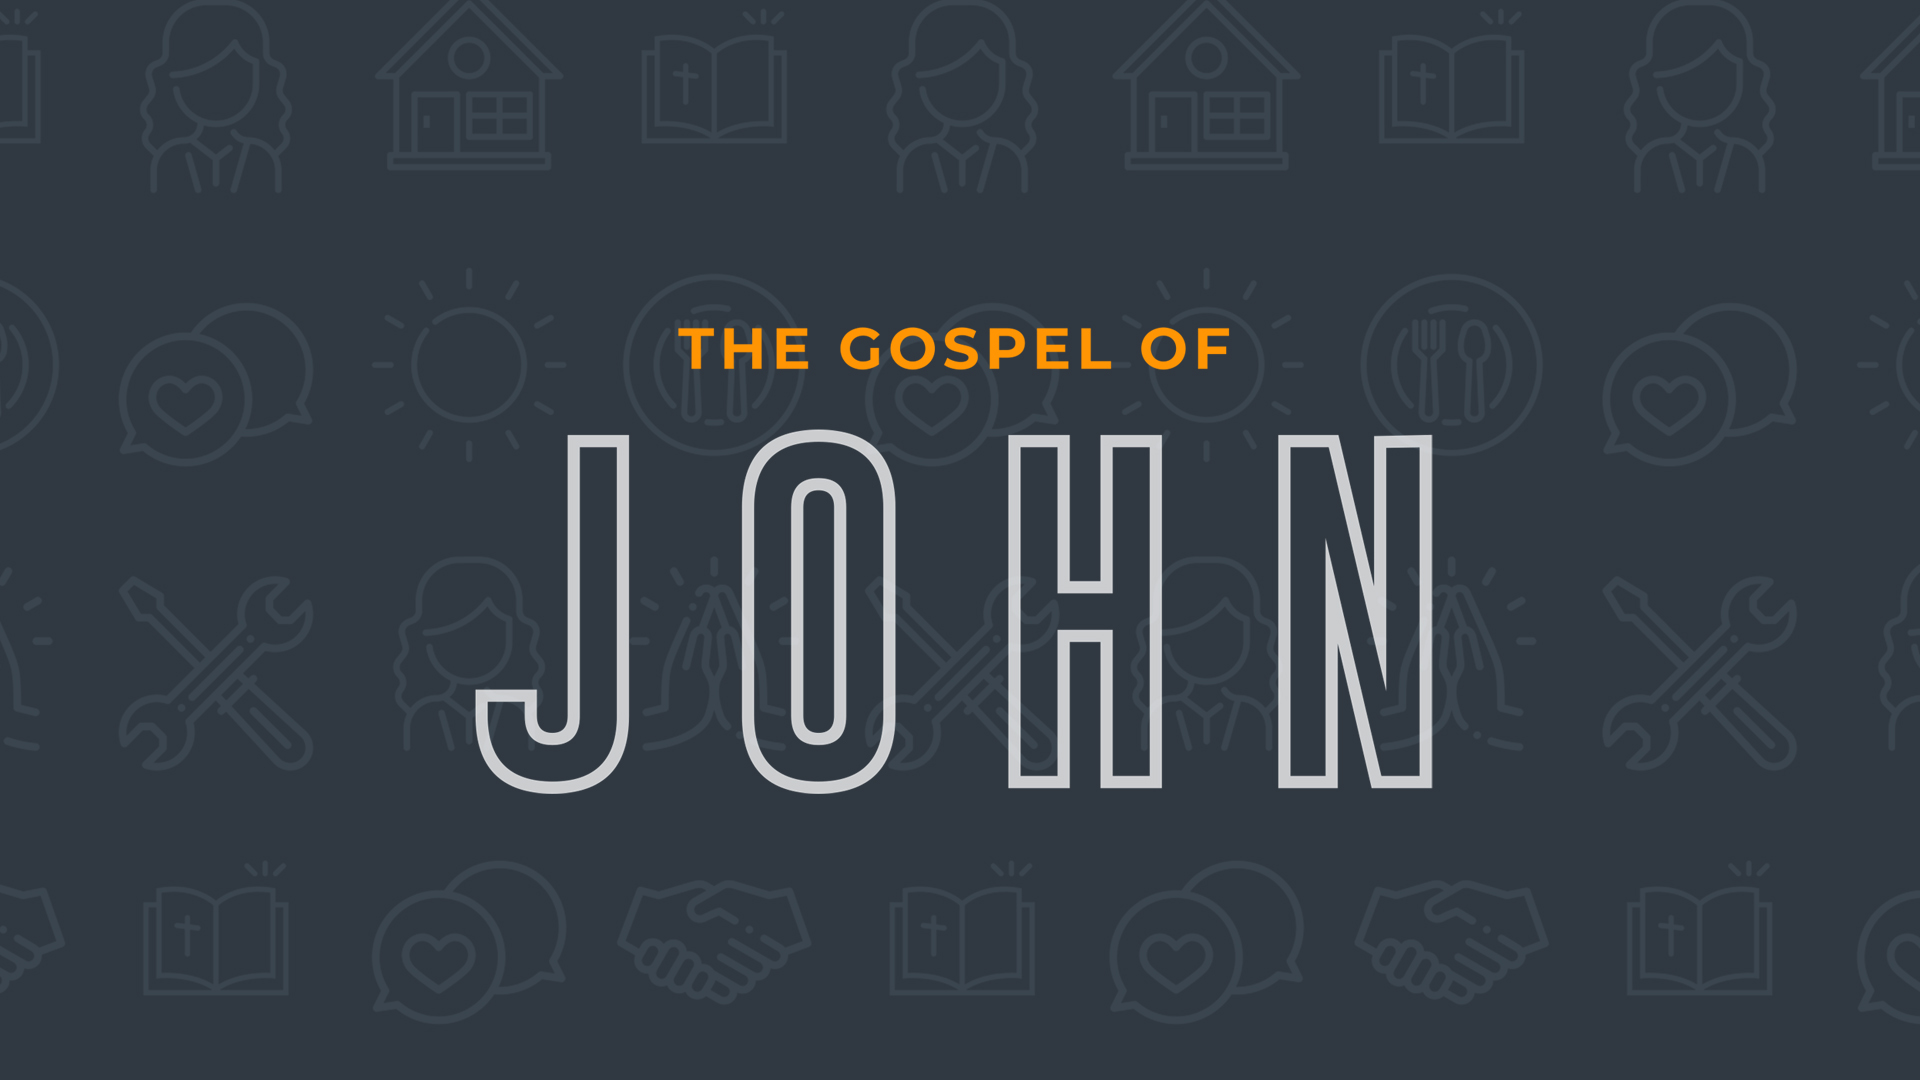 The Gospel of John: What You Understand Impacts What You Do